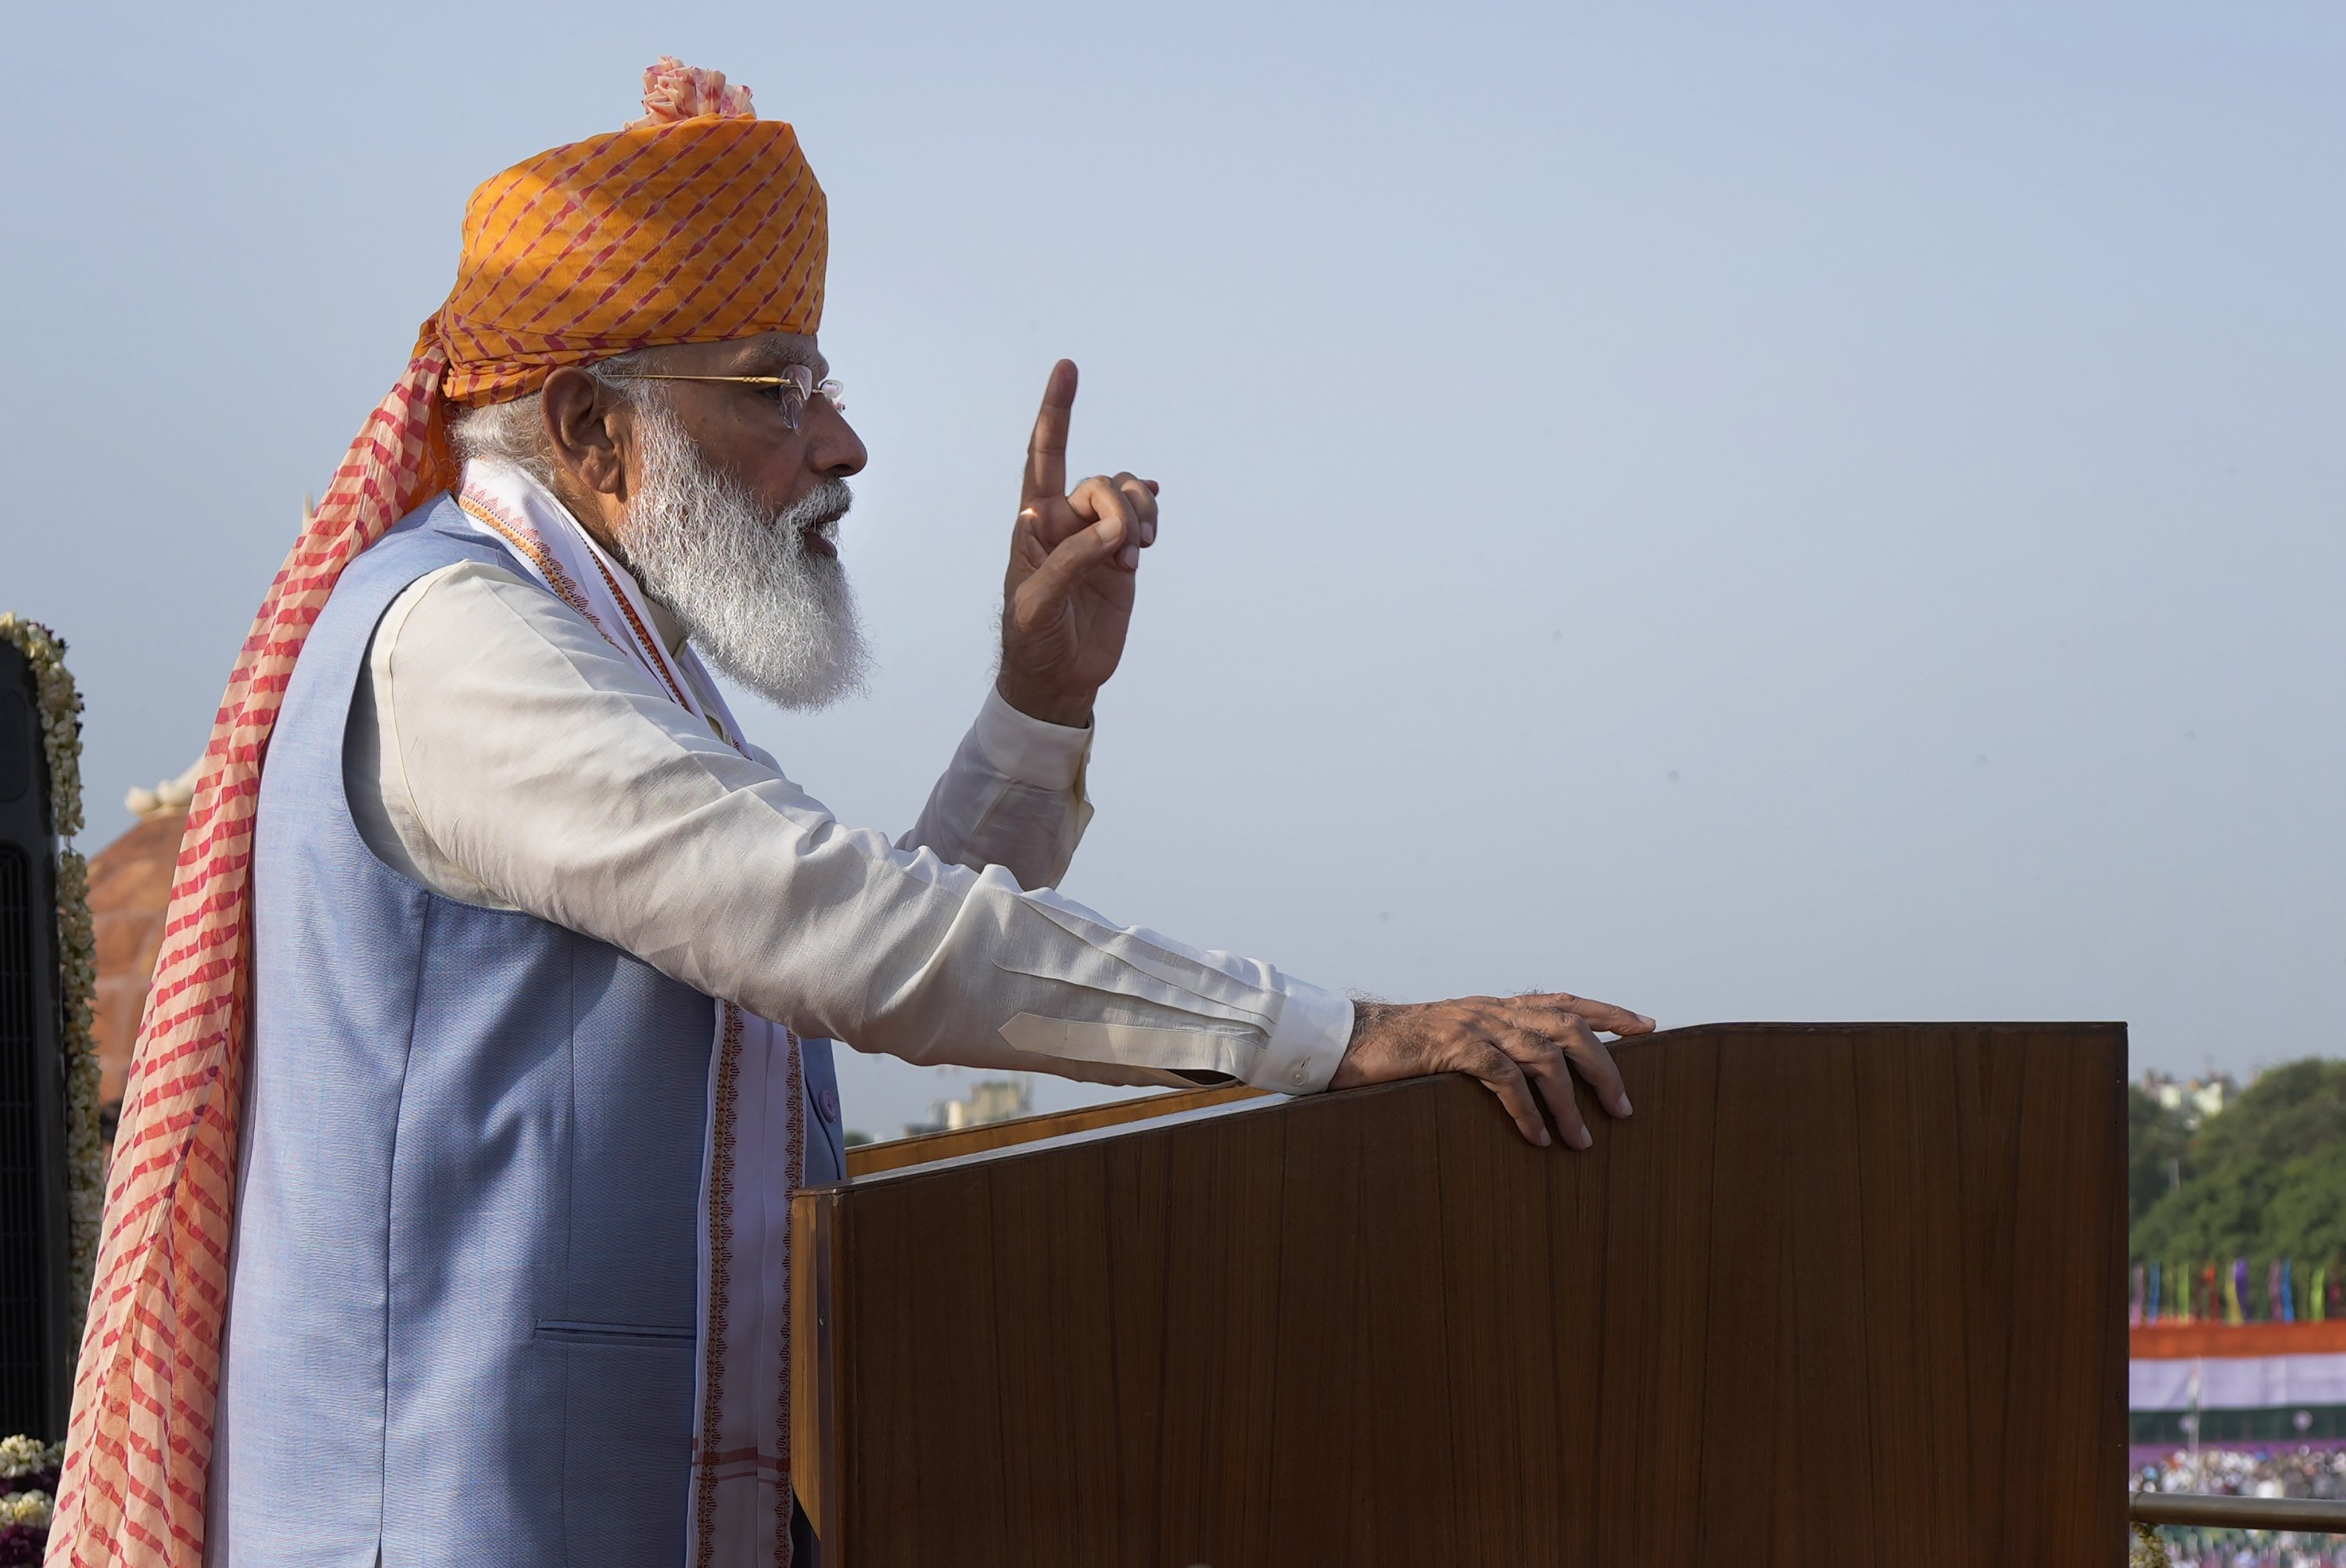 Indian Prime Minister Narendra Modi addresses the gathering during Independence Day celebrations at the historic 17th century Red Fort in New Delhi, India, on Sunday, Aug. 15, 2021. (AP Photo)